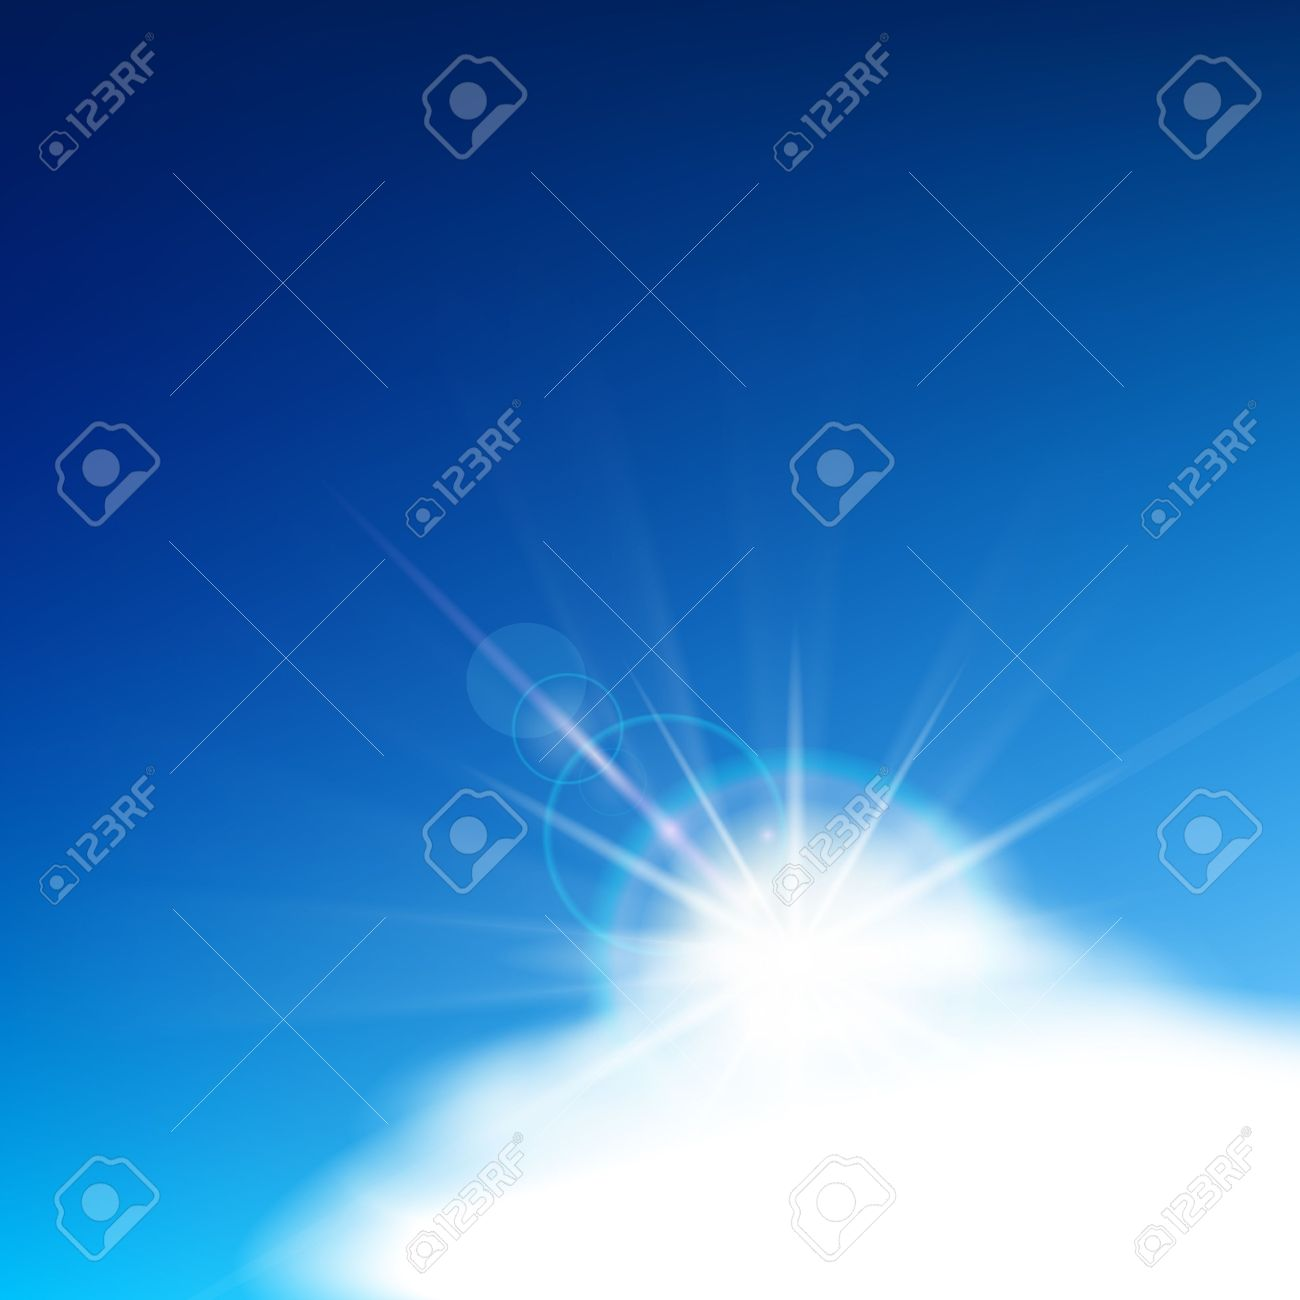 Bright Blue Sky With Easy Clouds And Solar Patch Of Light Royalty.